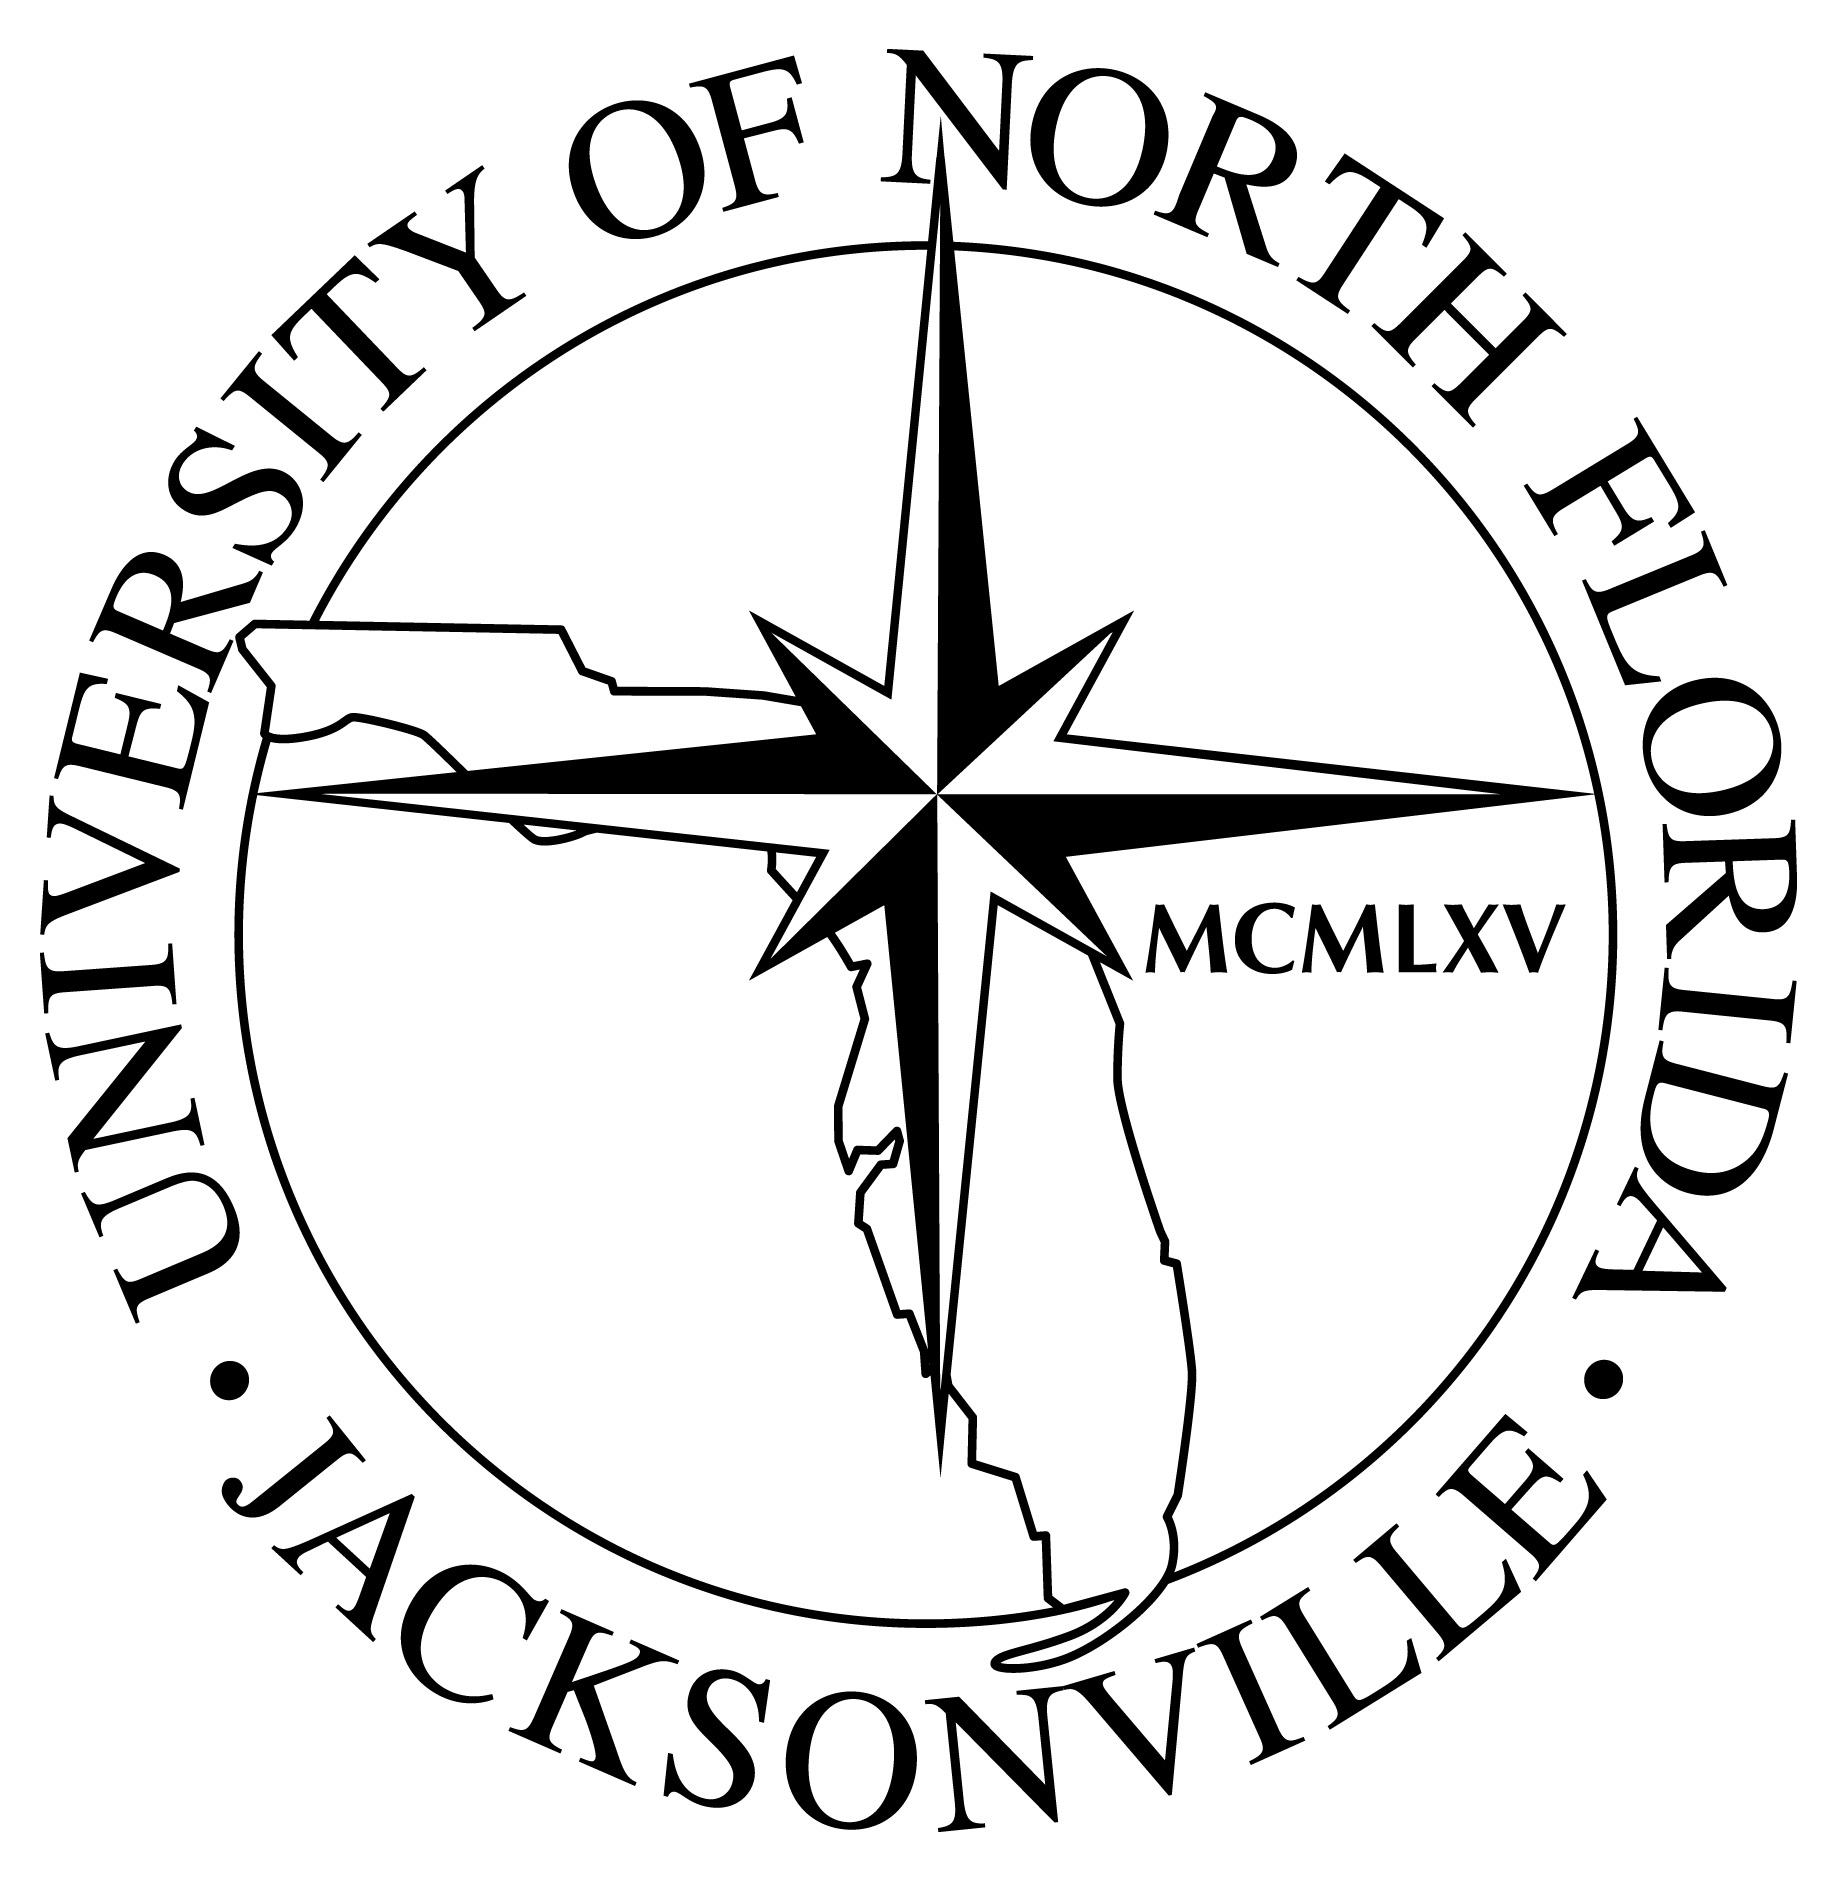 Official UNF seal in shape of compass